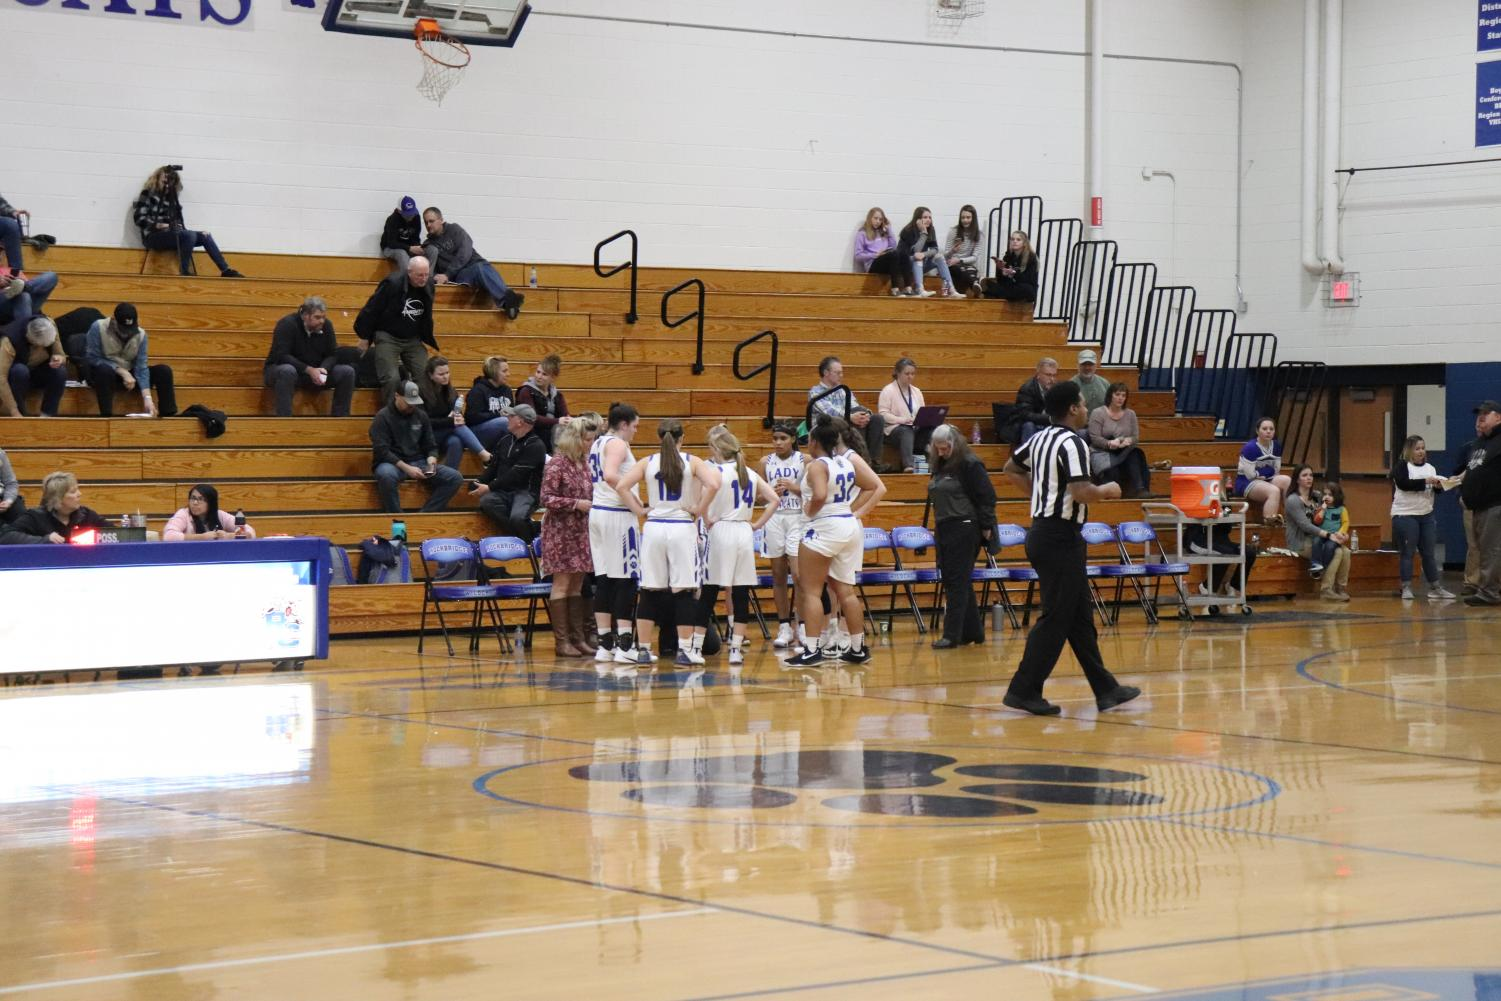 Girls team huddling in a timeout.